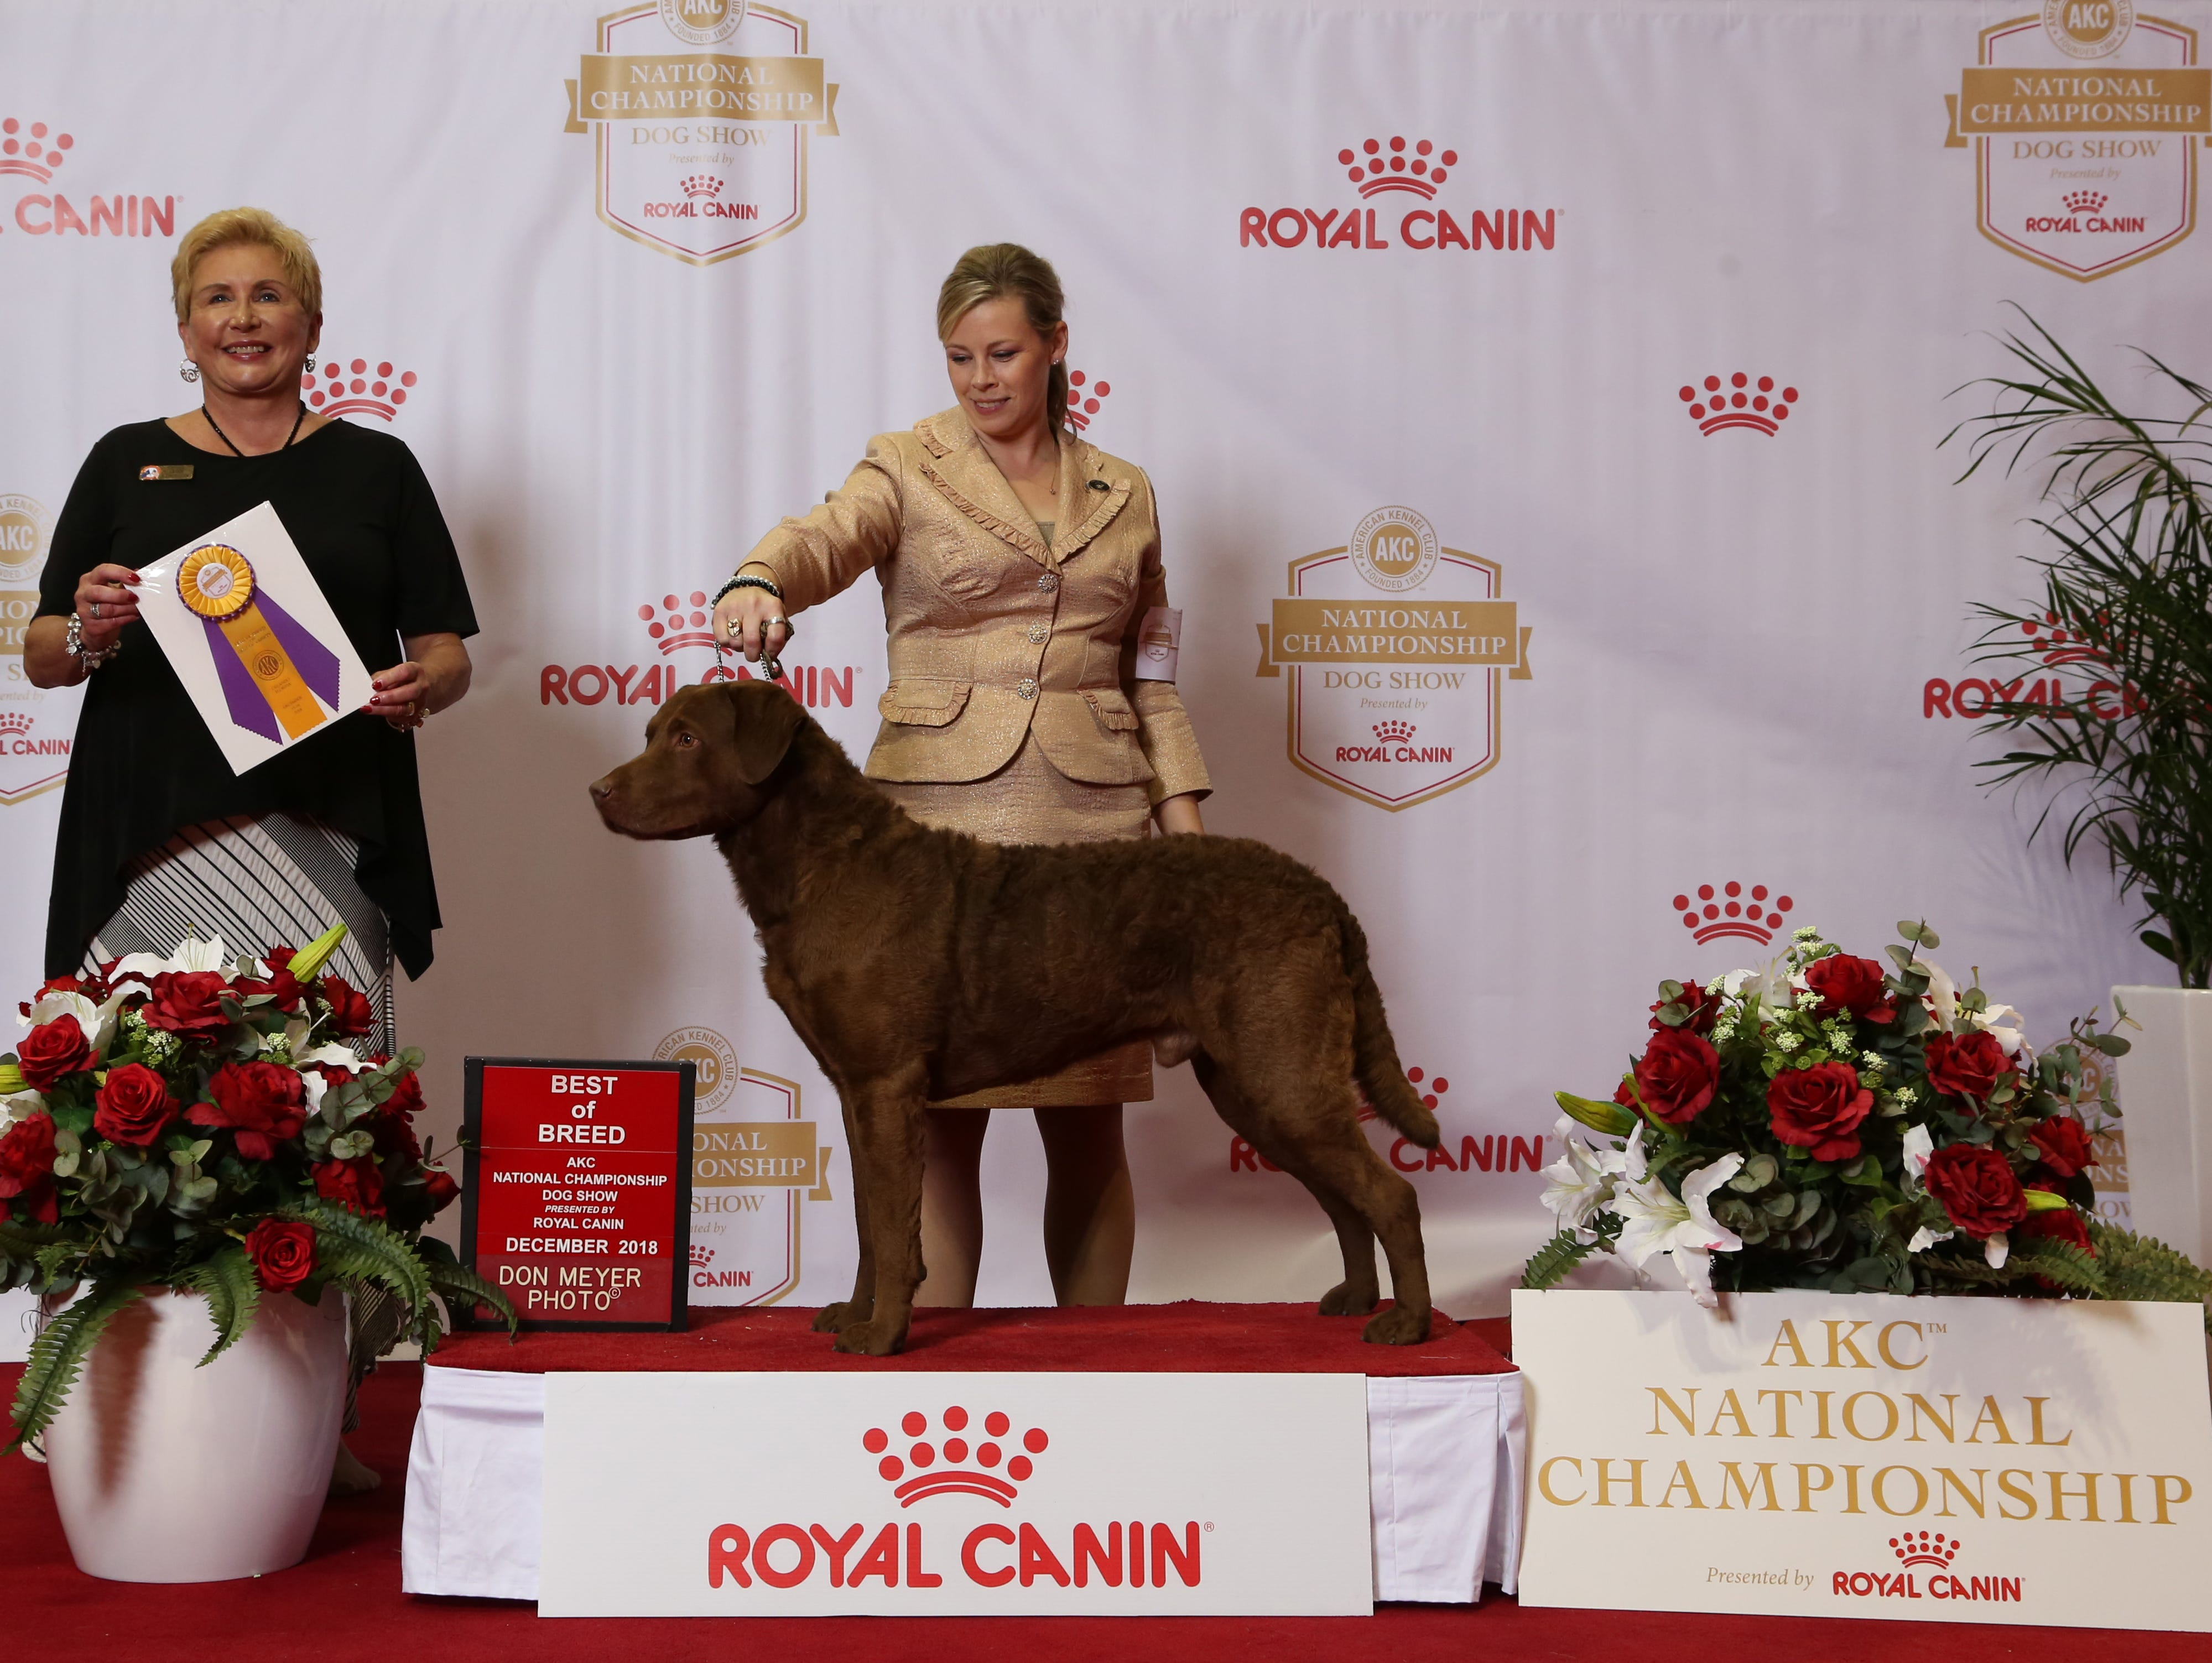 Trio, a Chesapeake Bay retriever owned by Chris and Karen Beste of Wilmington, wins Best of Breed at the AKC National Championship in Orlando, Fla., in December 2018. He is shown by handler Angela Lloyd. Trio will compete in the 2019 Westminster Kennel Club Dog Show in New York. He was the No. 1 male Chesapeake Bay retriever in breed in the country for the 2018 season.